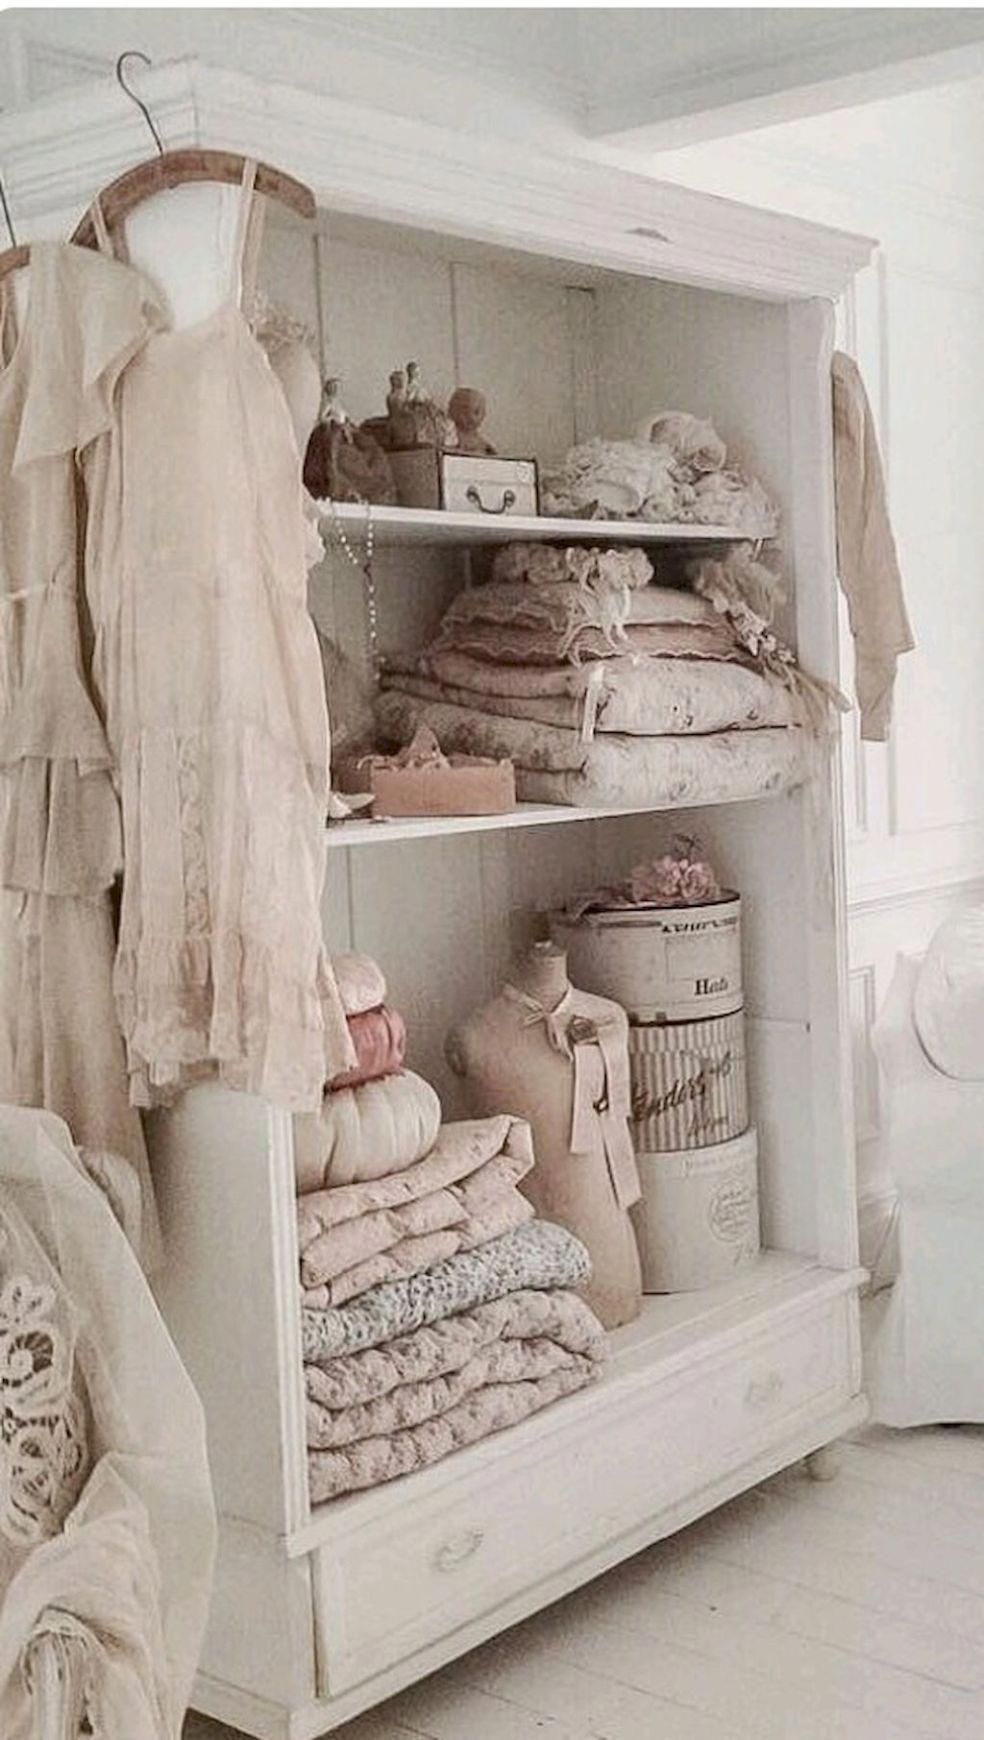 Tips For cucina shabby chic #cucinashabbychic | Shabby chic ...